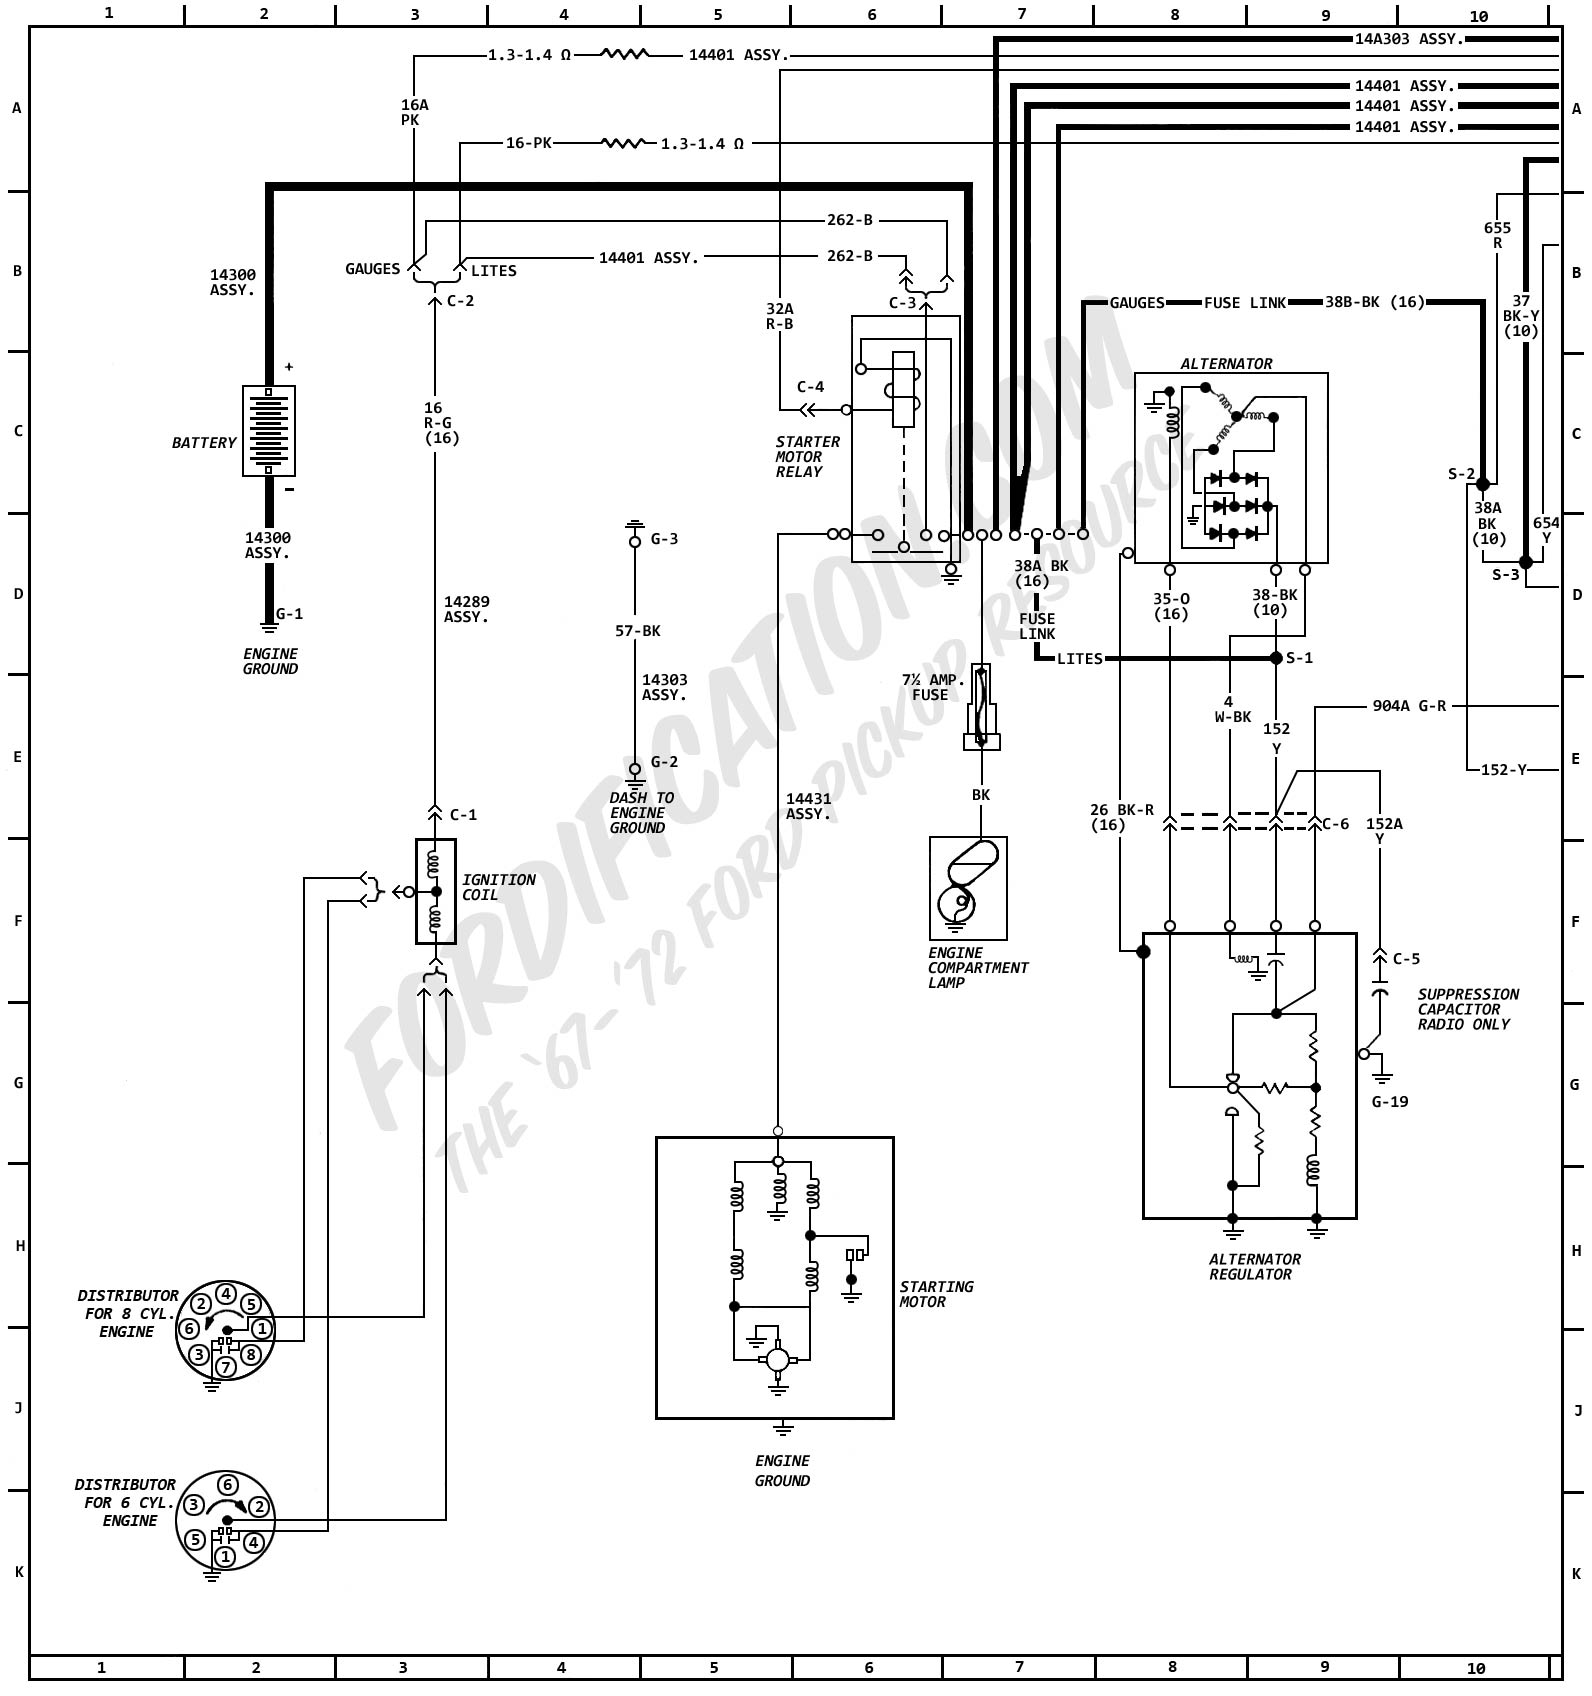 Wiring Diagram For A 1972 Ford Amfm Radio Content Resource Of 1973 Mg Midget F100 Online Schematics Rh Delvato Co